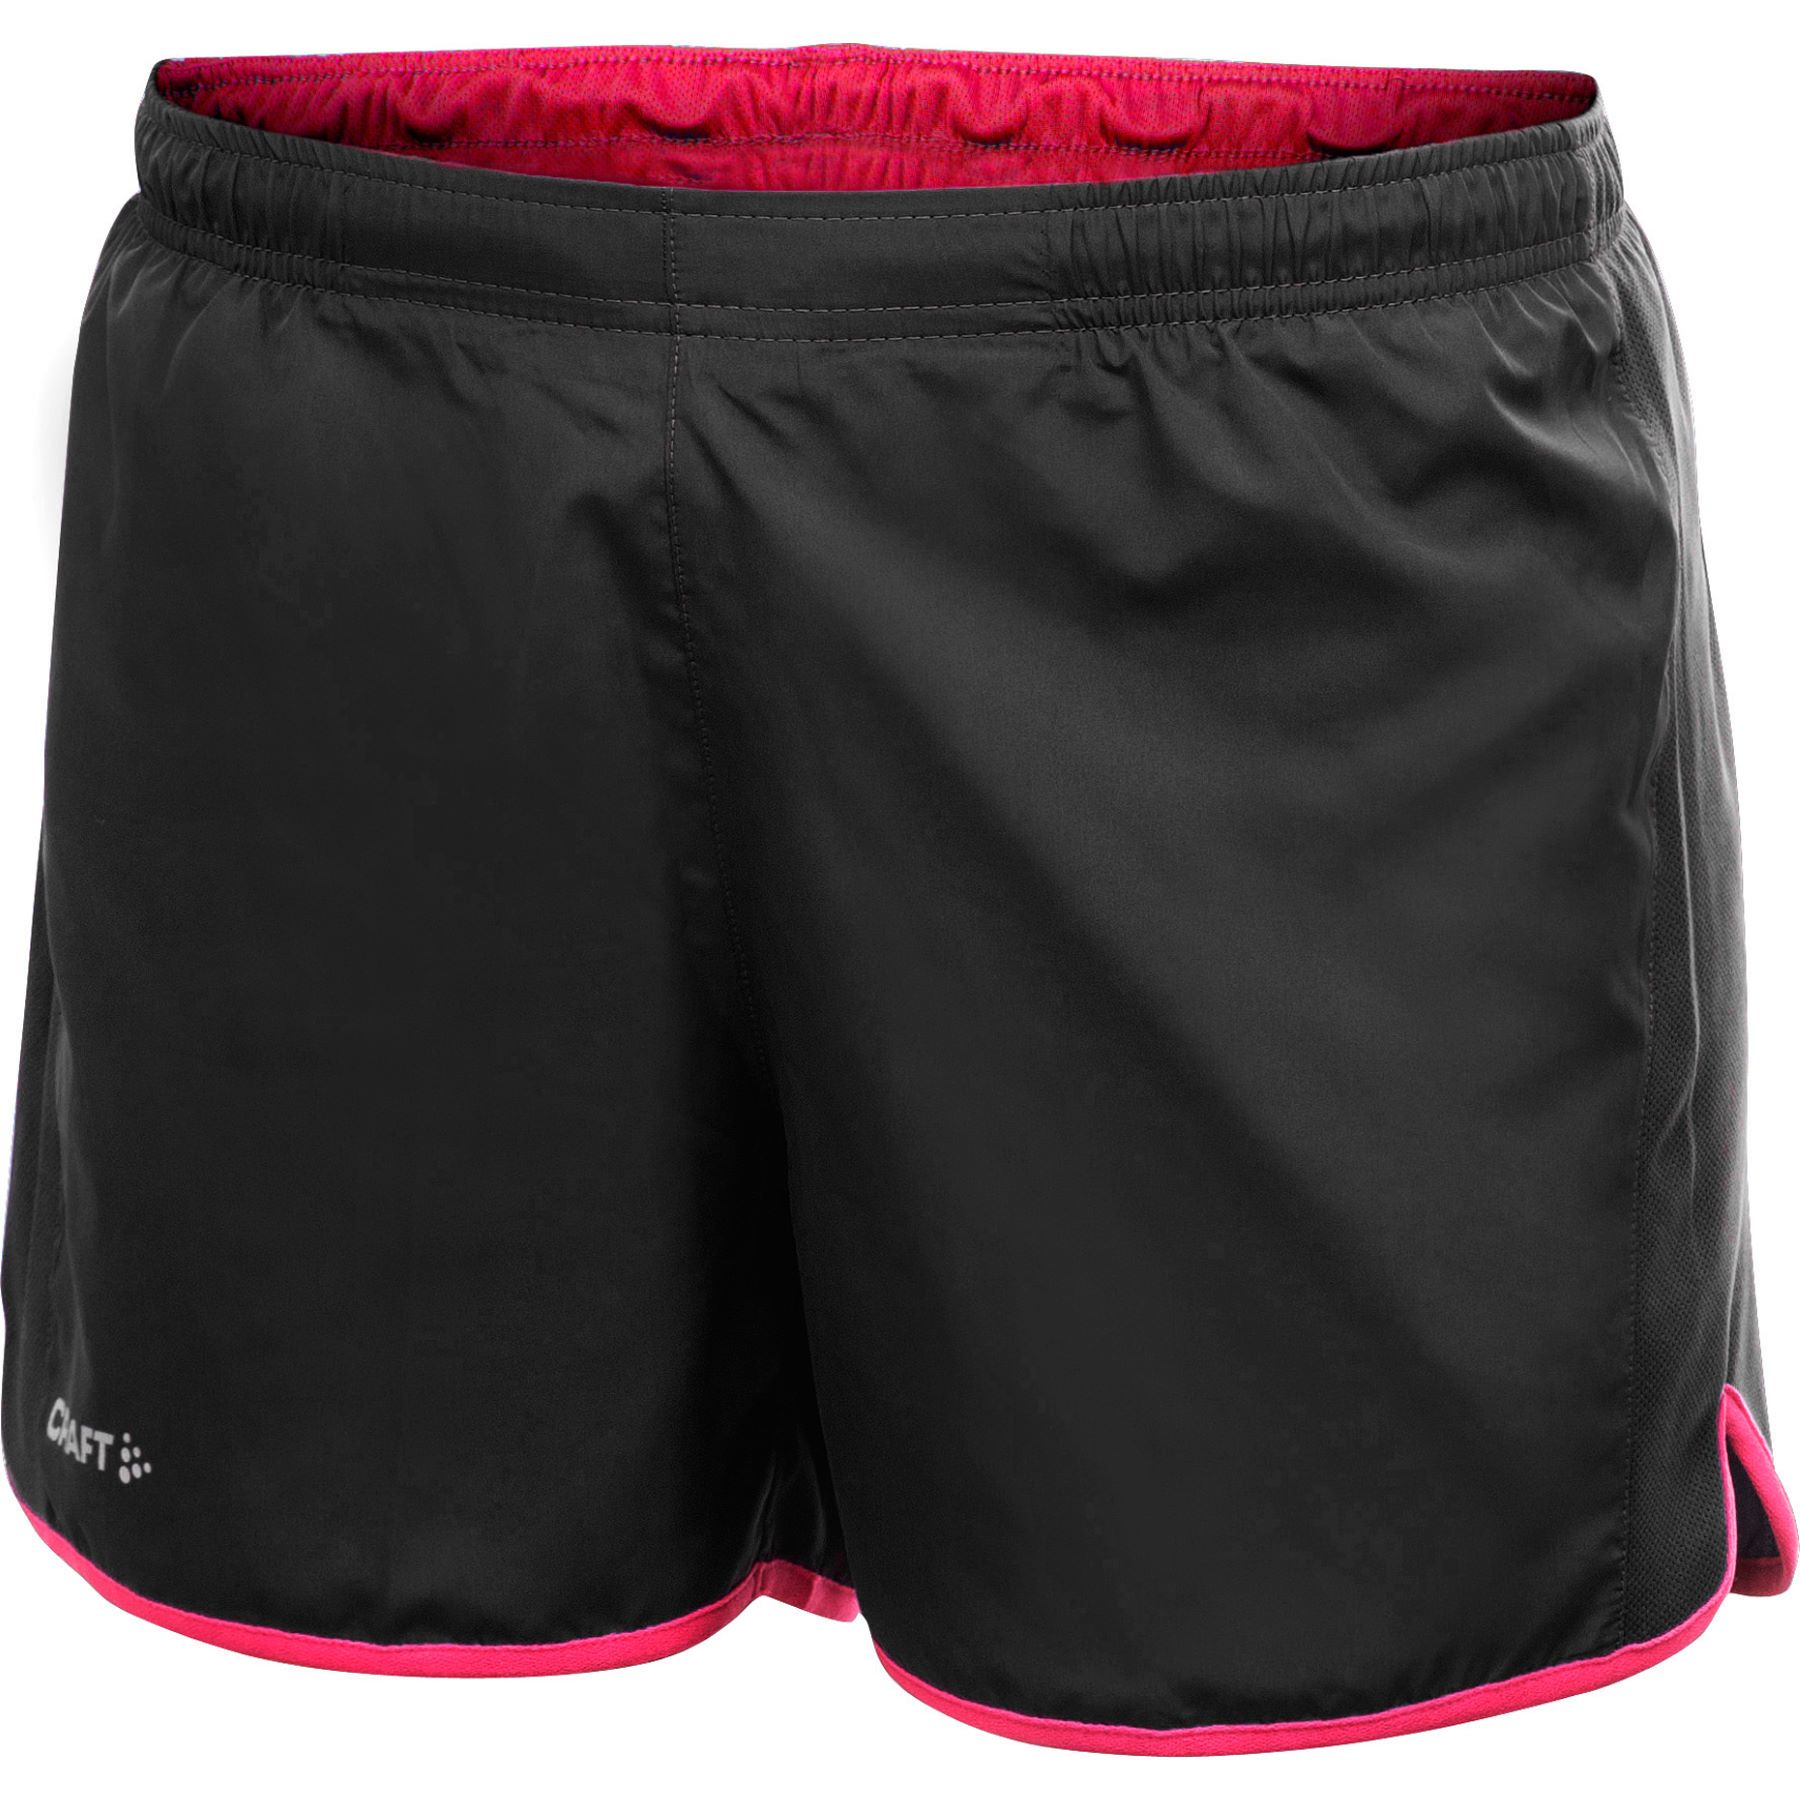 Free shipping BOTH ways on 11 in inseam mens shorts, from our vast selection of styles. Fast delivery, and 24/7/ real-person service with a smile. Click or call